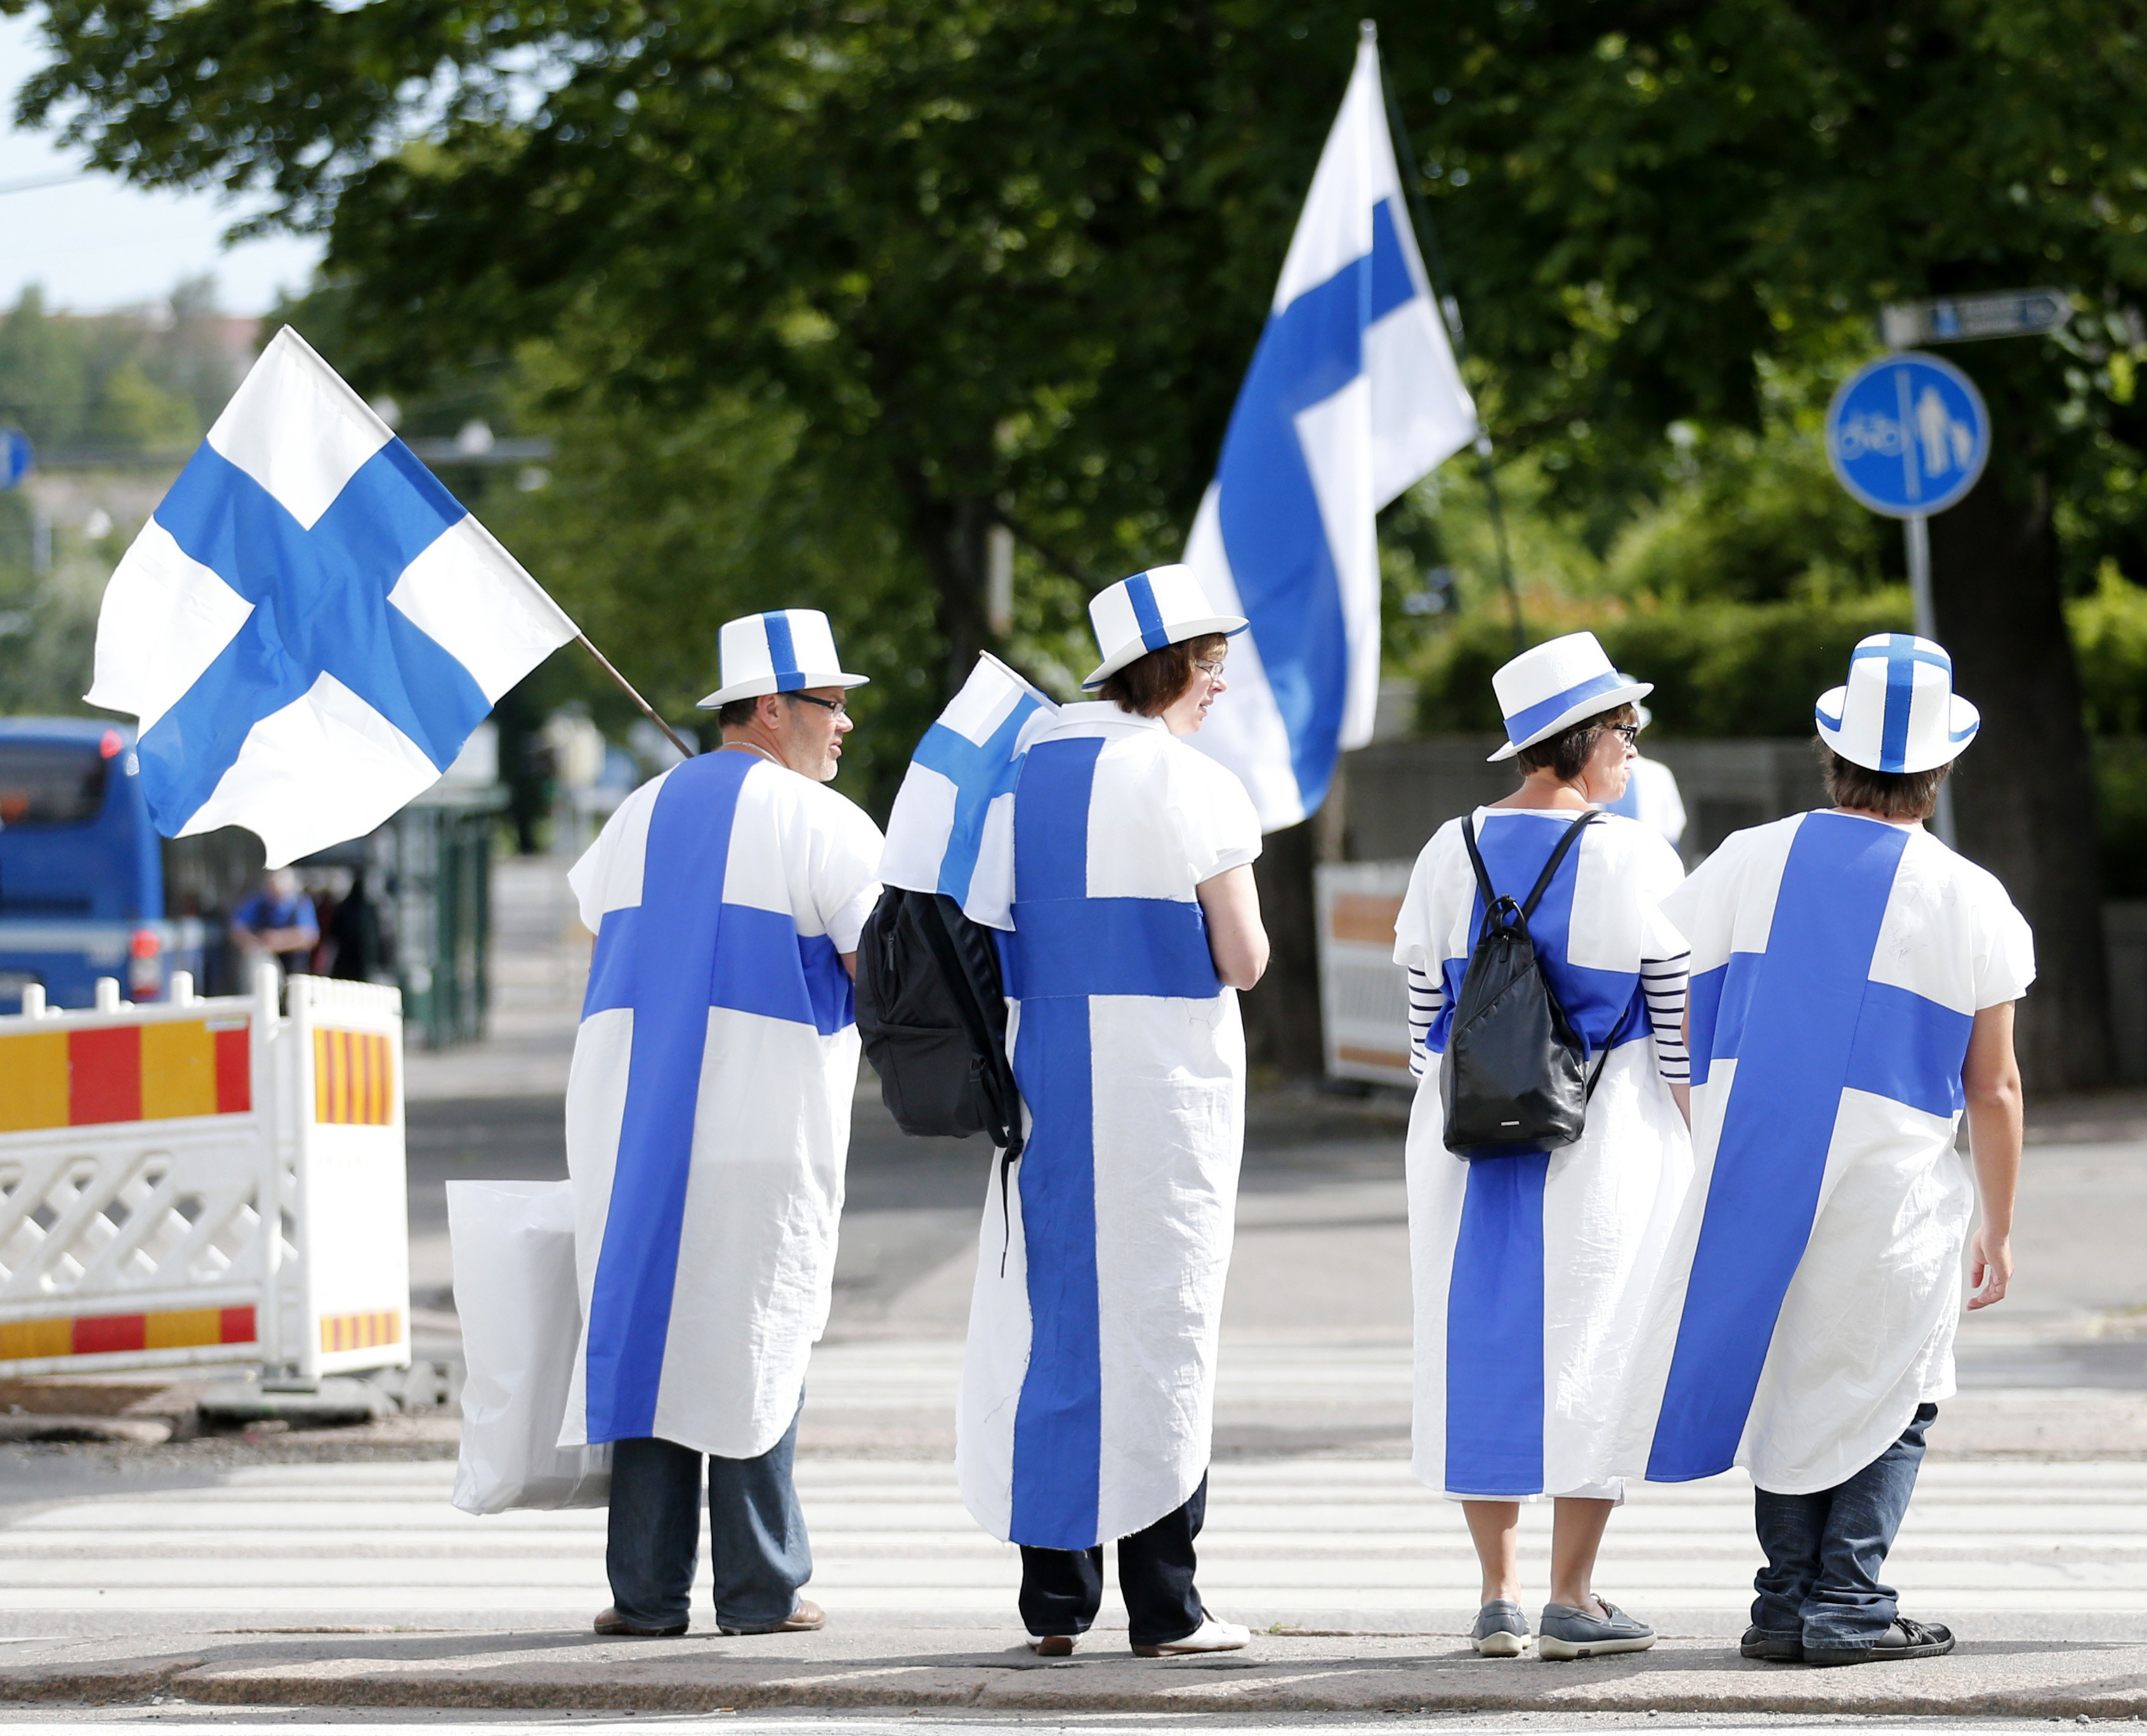 Finland recently published everyone's taxes on 'National Jealousy Day' |  World Economic Forum